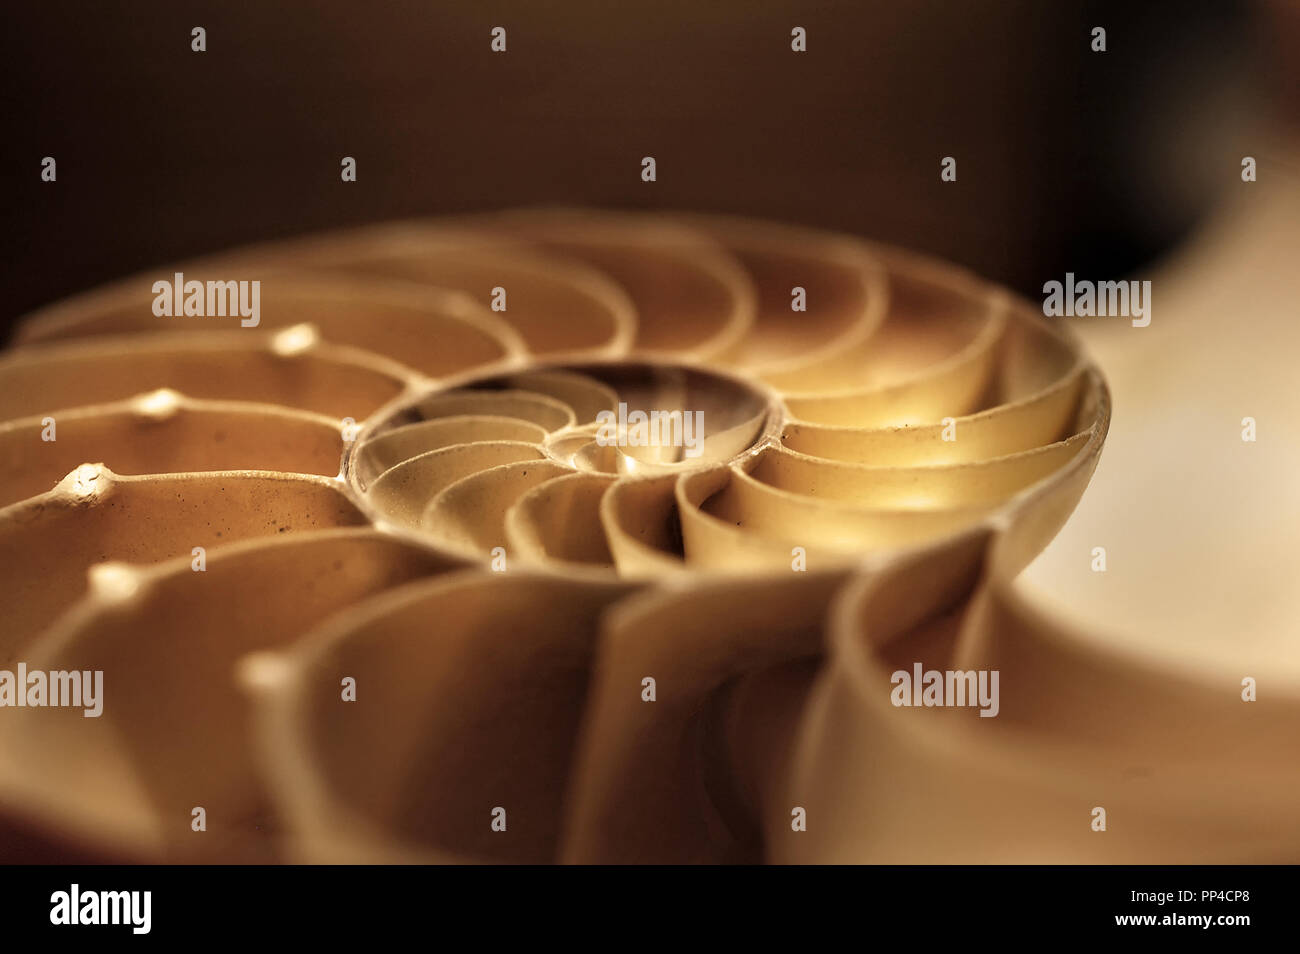 A half nautilus shell in brown and yellow sepia tones in soft focus. - Stock Image